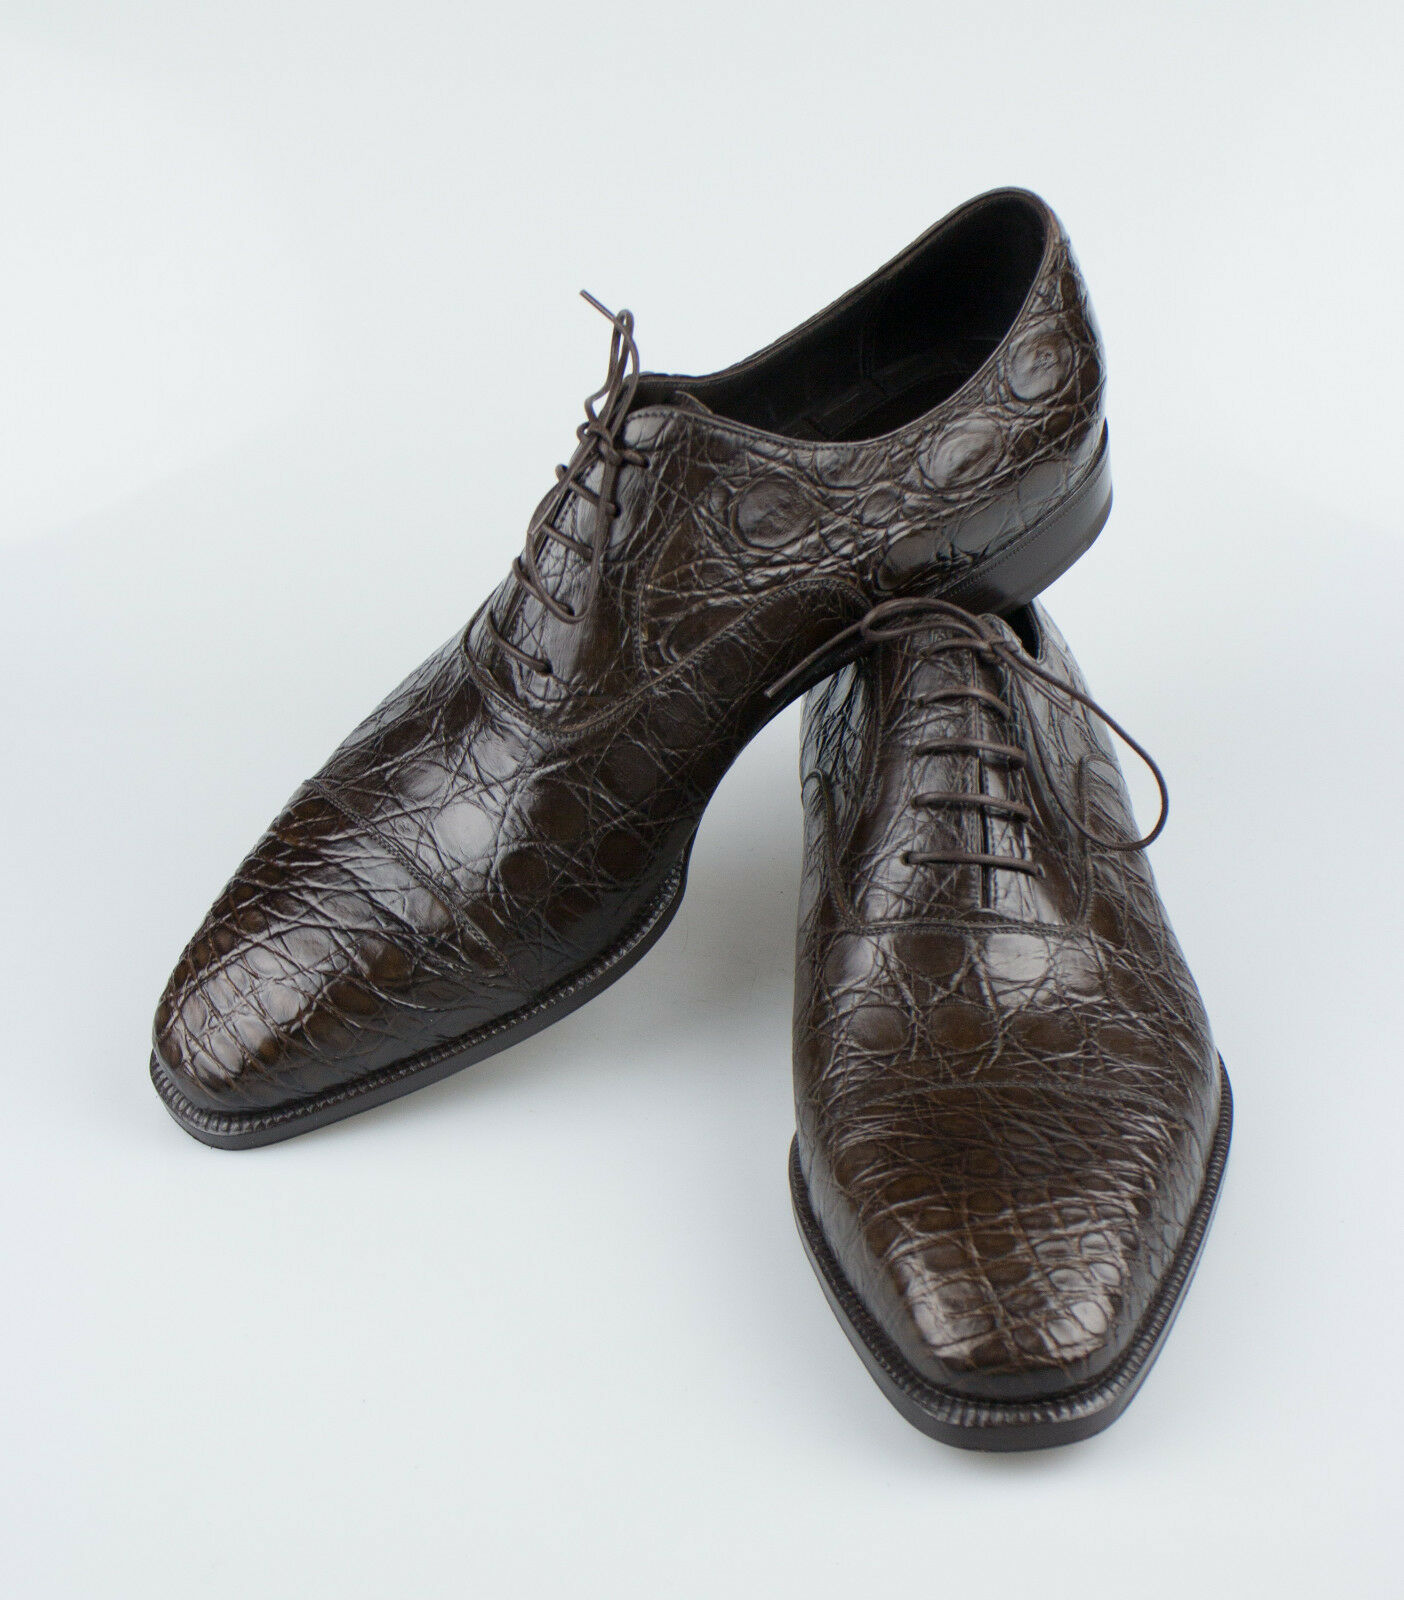 New BRIONI Brown Crocodile Leather Oxford Dress shoes Size 9 42